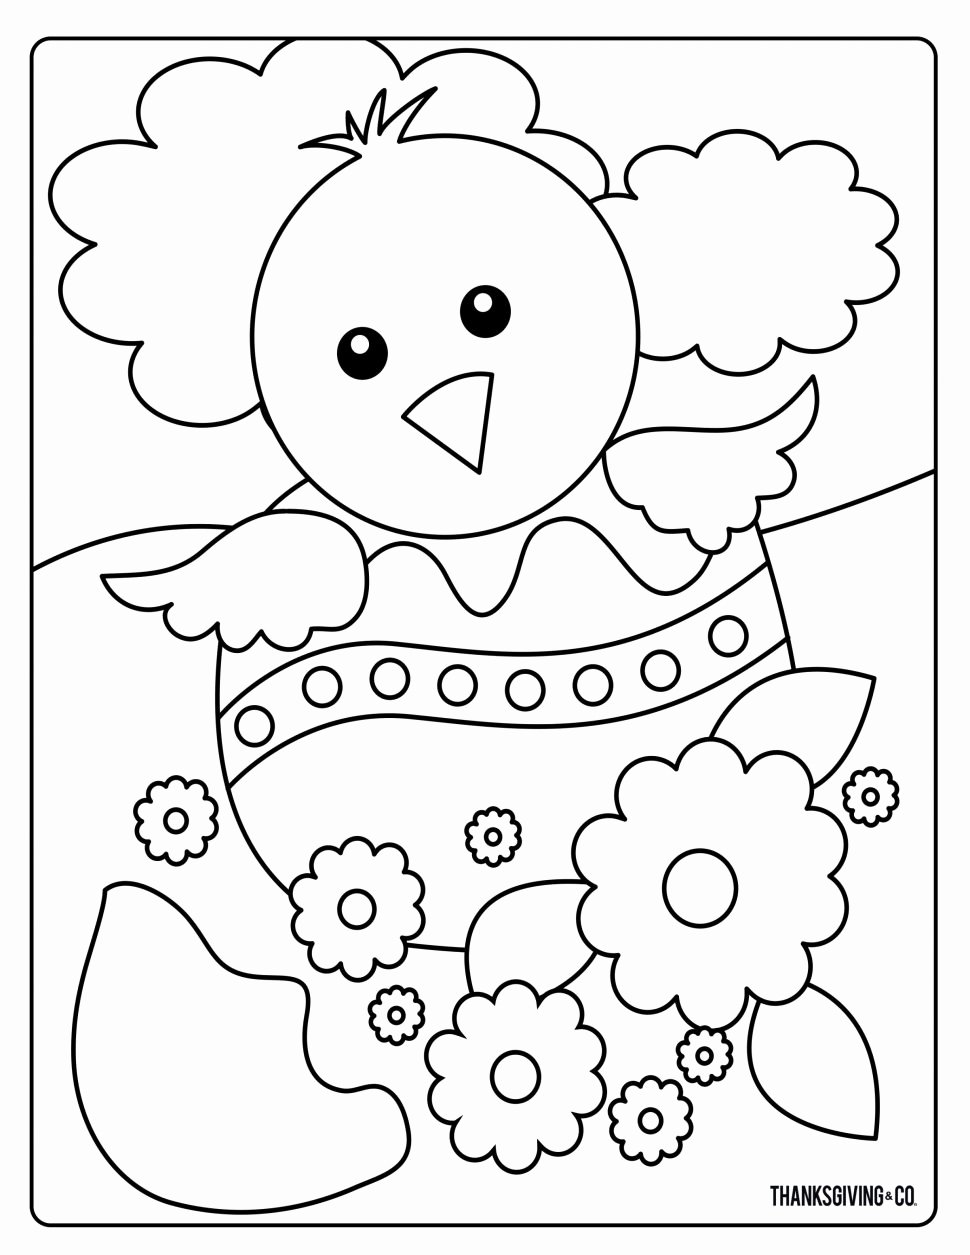 Printable Coloring Worksheets for Preschoolers Fresh Coloring Book Coloring Worksheets forndergarten Pages